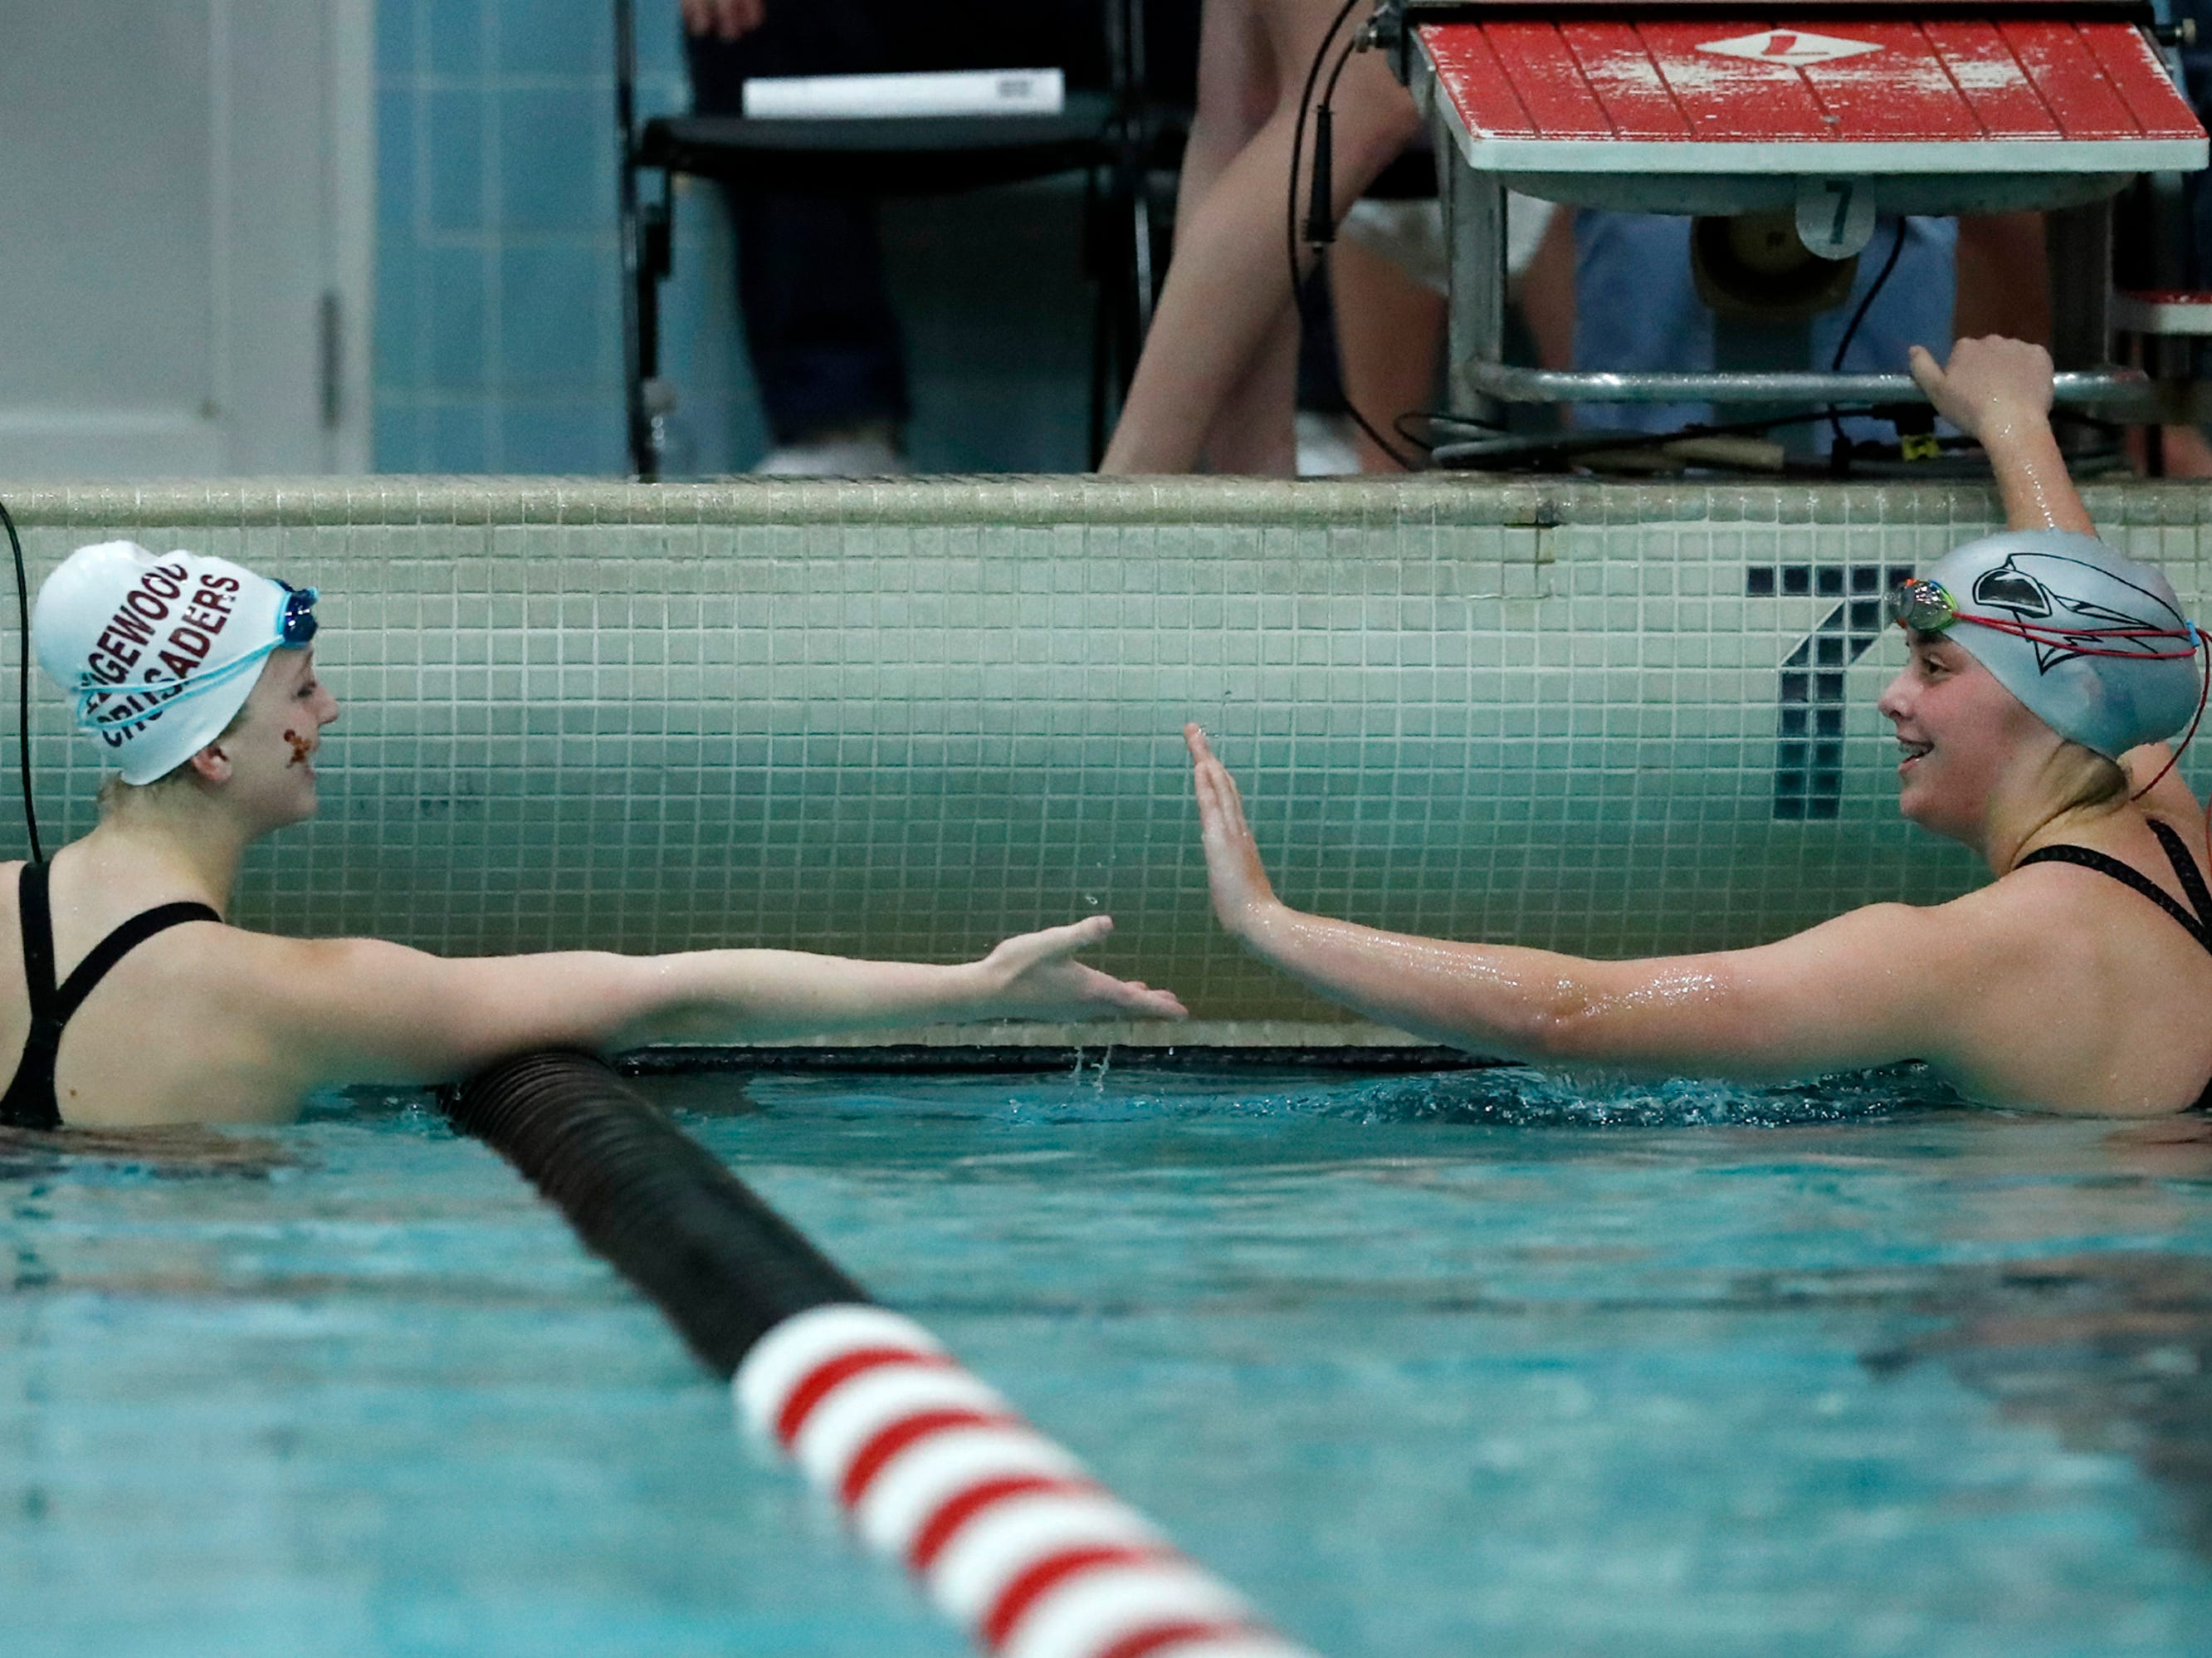 Edgewood's Issy Petersen shakes hands with Merrill's Claire Schultz after finishing the 50 yard freestyle during the WIAA Division 2 State Swimming and Diving meet Friday, Nov. 9, 2018, at the UW Natatorium in Madison, Wis.Danny Damiani/USA TODAY NETWORK-Wisconsin